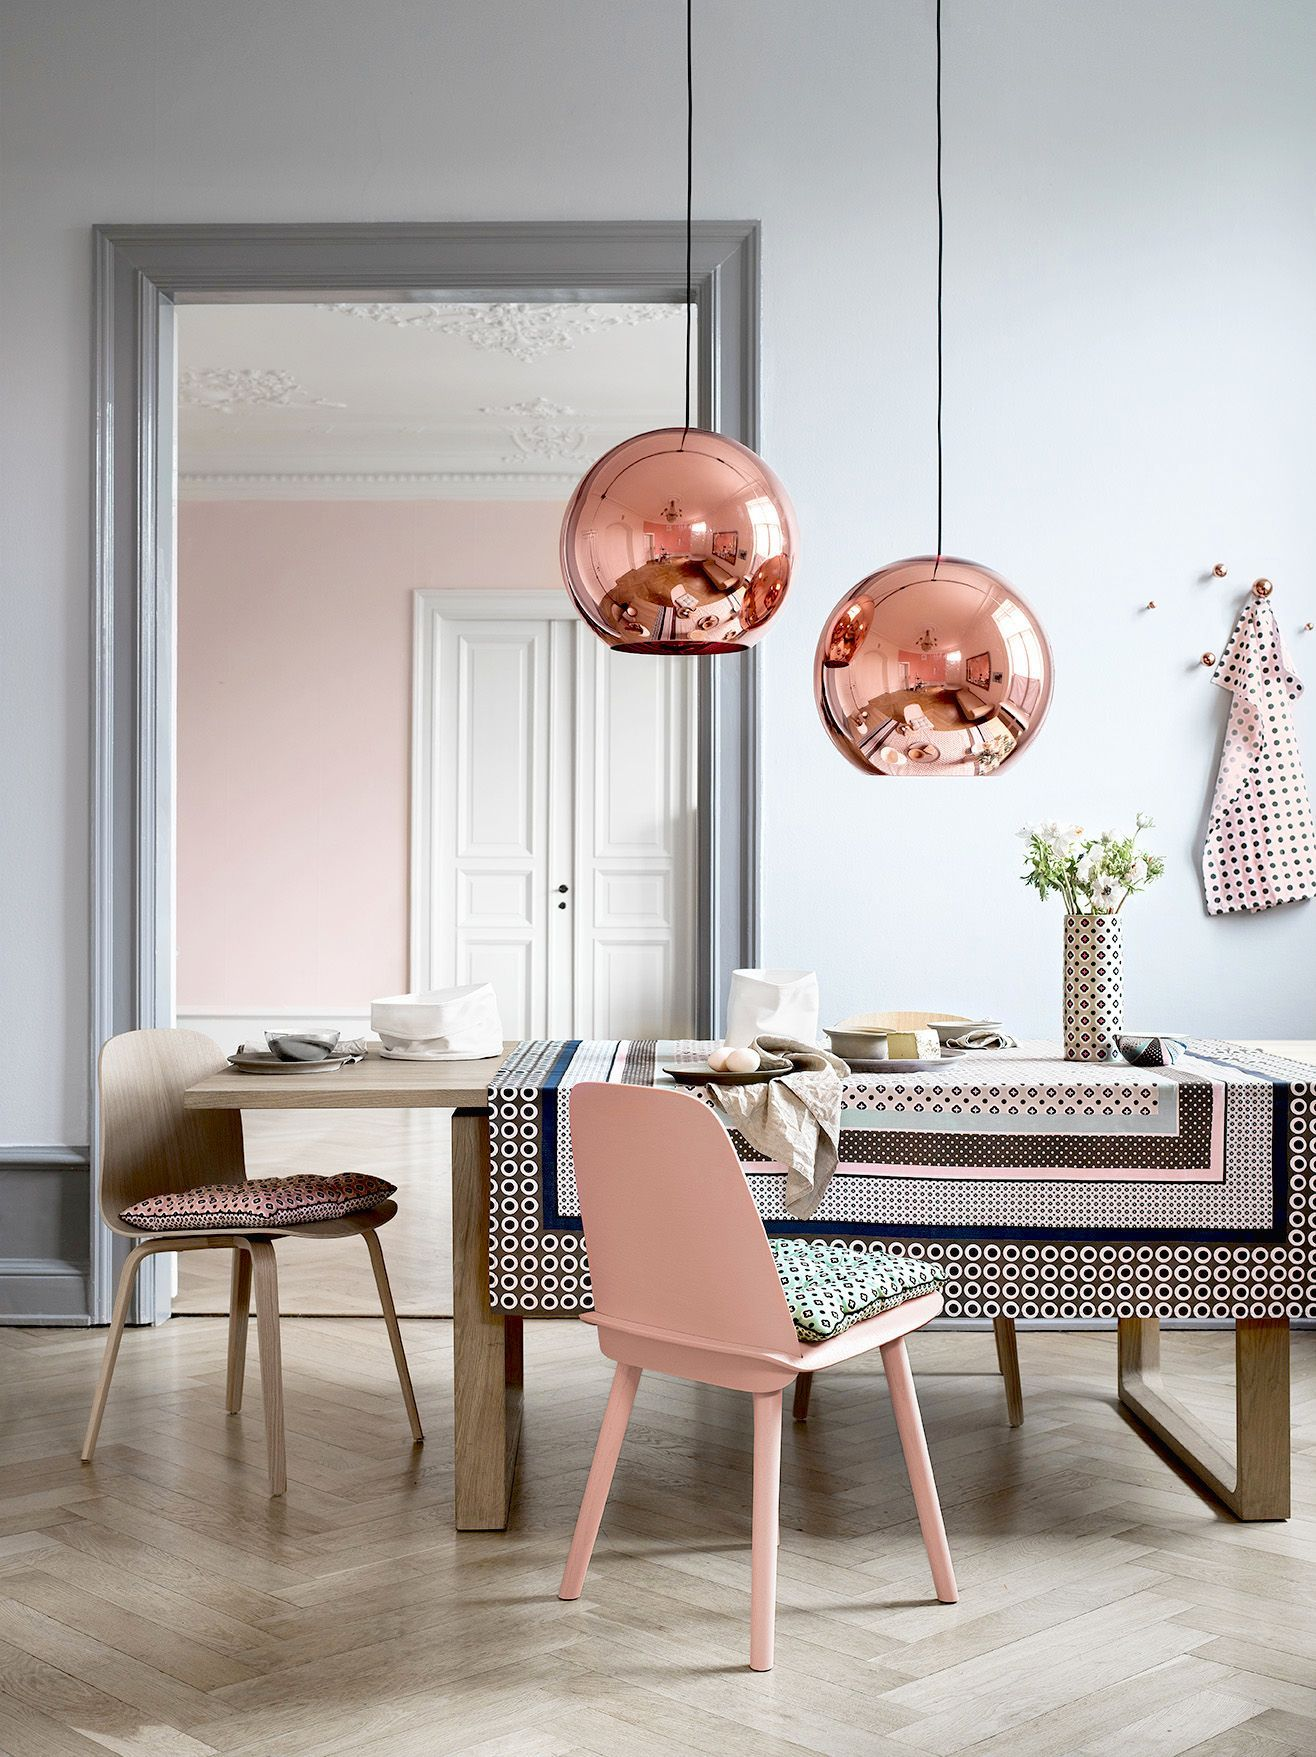 20 examples of copper pendant lighting for your home rh homedit com copper lamp shade kitchen copper kitchen lampshade